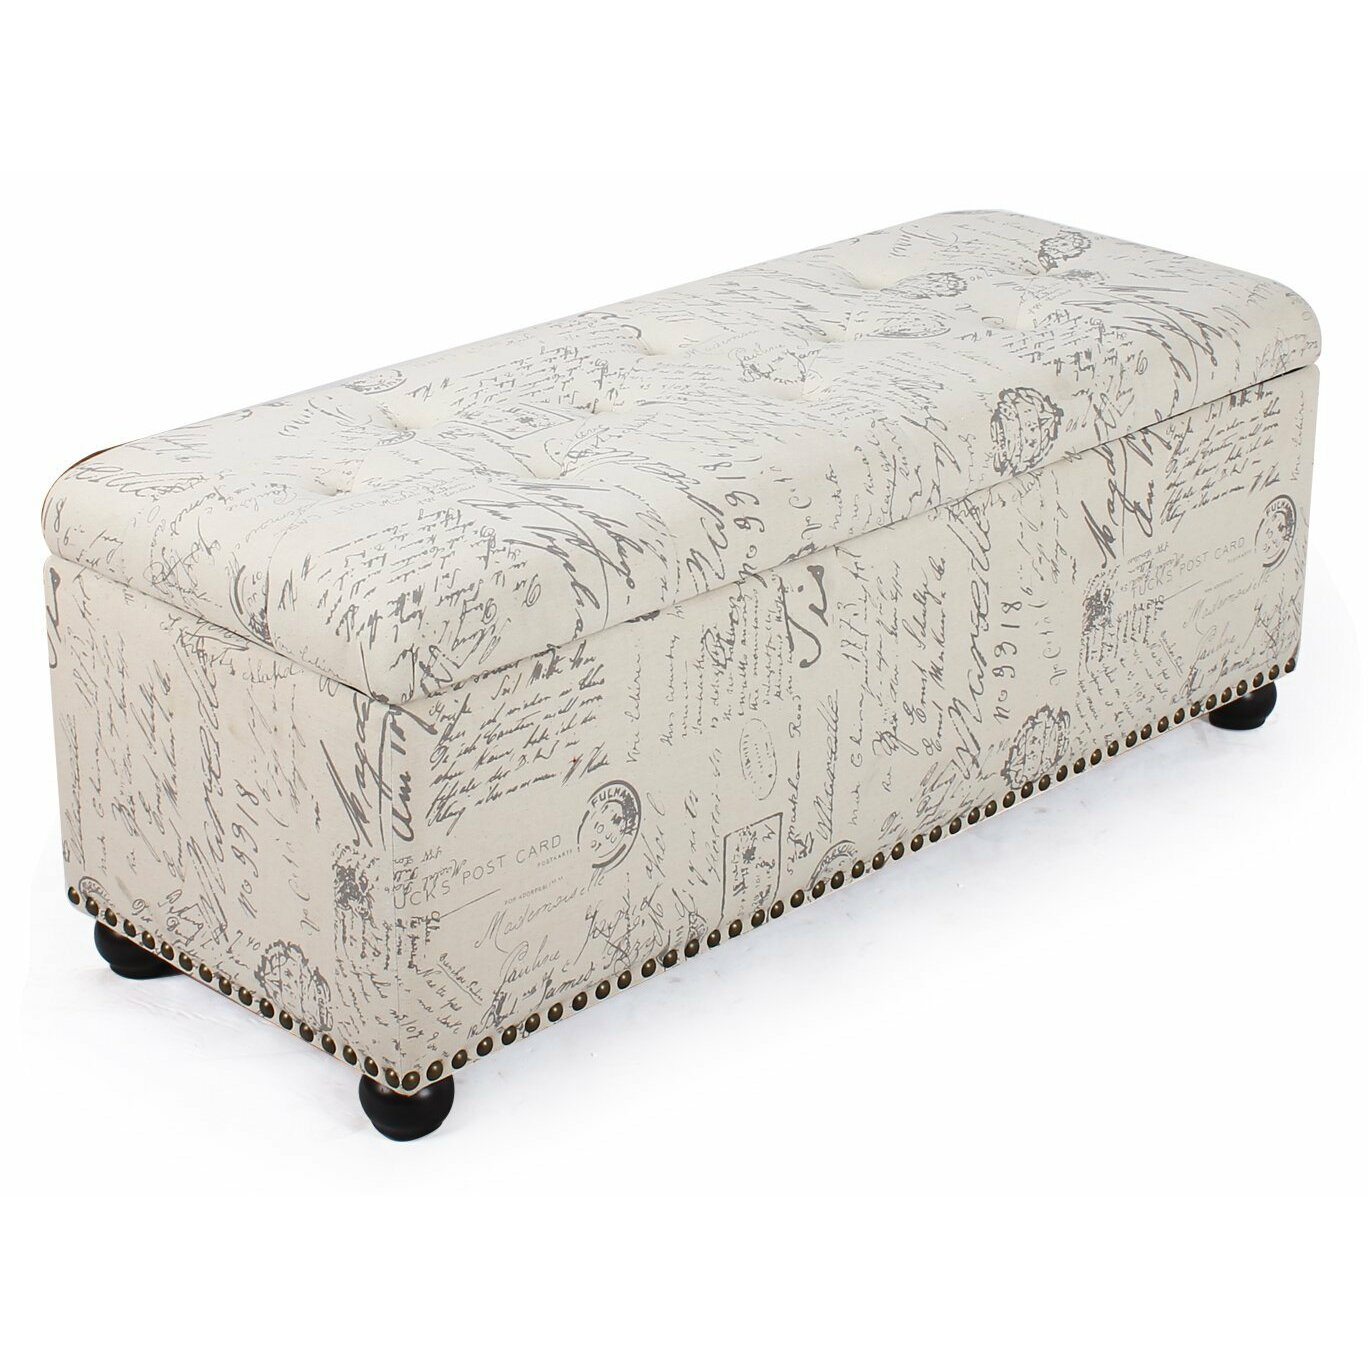 Adecotrading storage bedroom bench reviews wayfair - Bedroom benches with storage ...